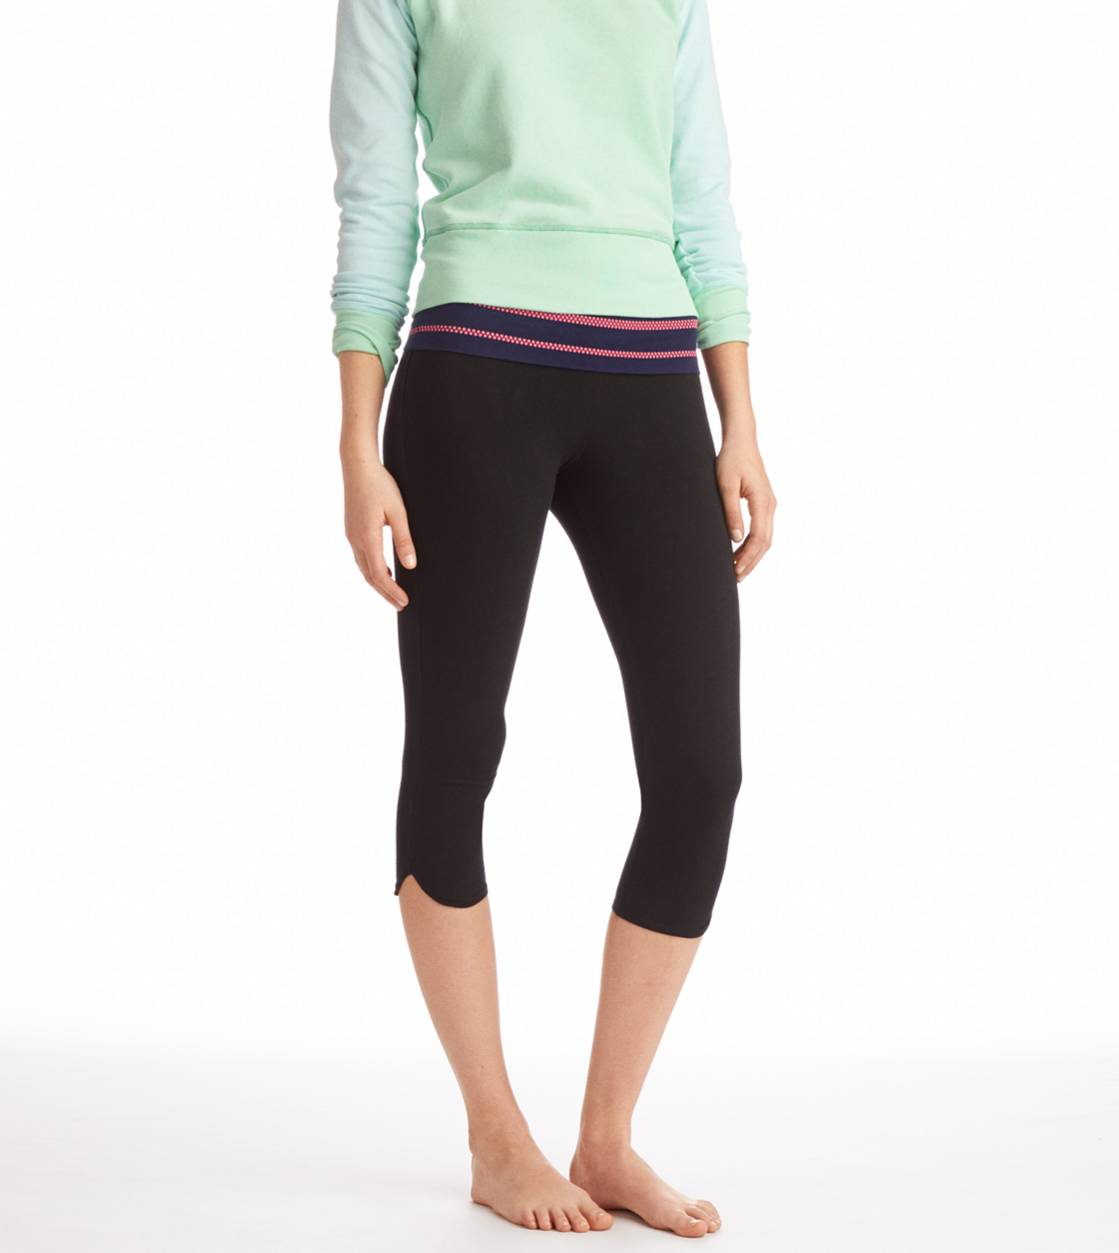 Royal Navy Aerie Neon Stud Crop Yoga Pant